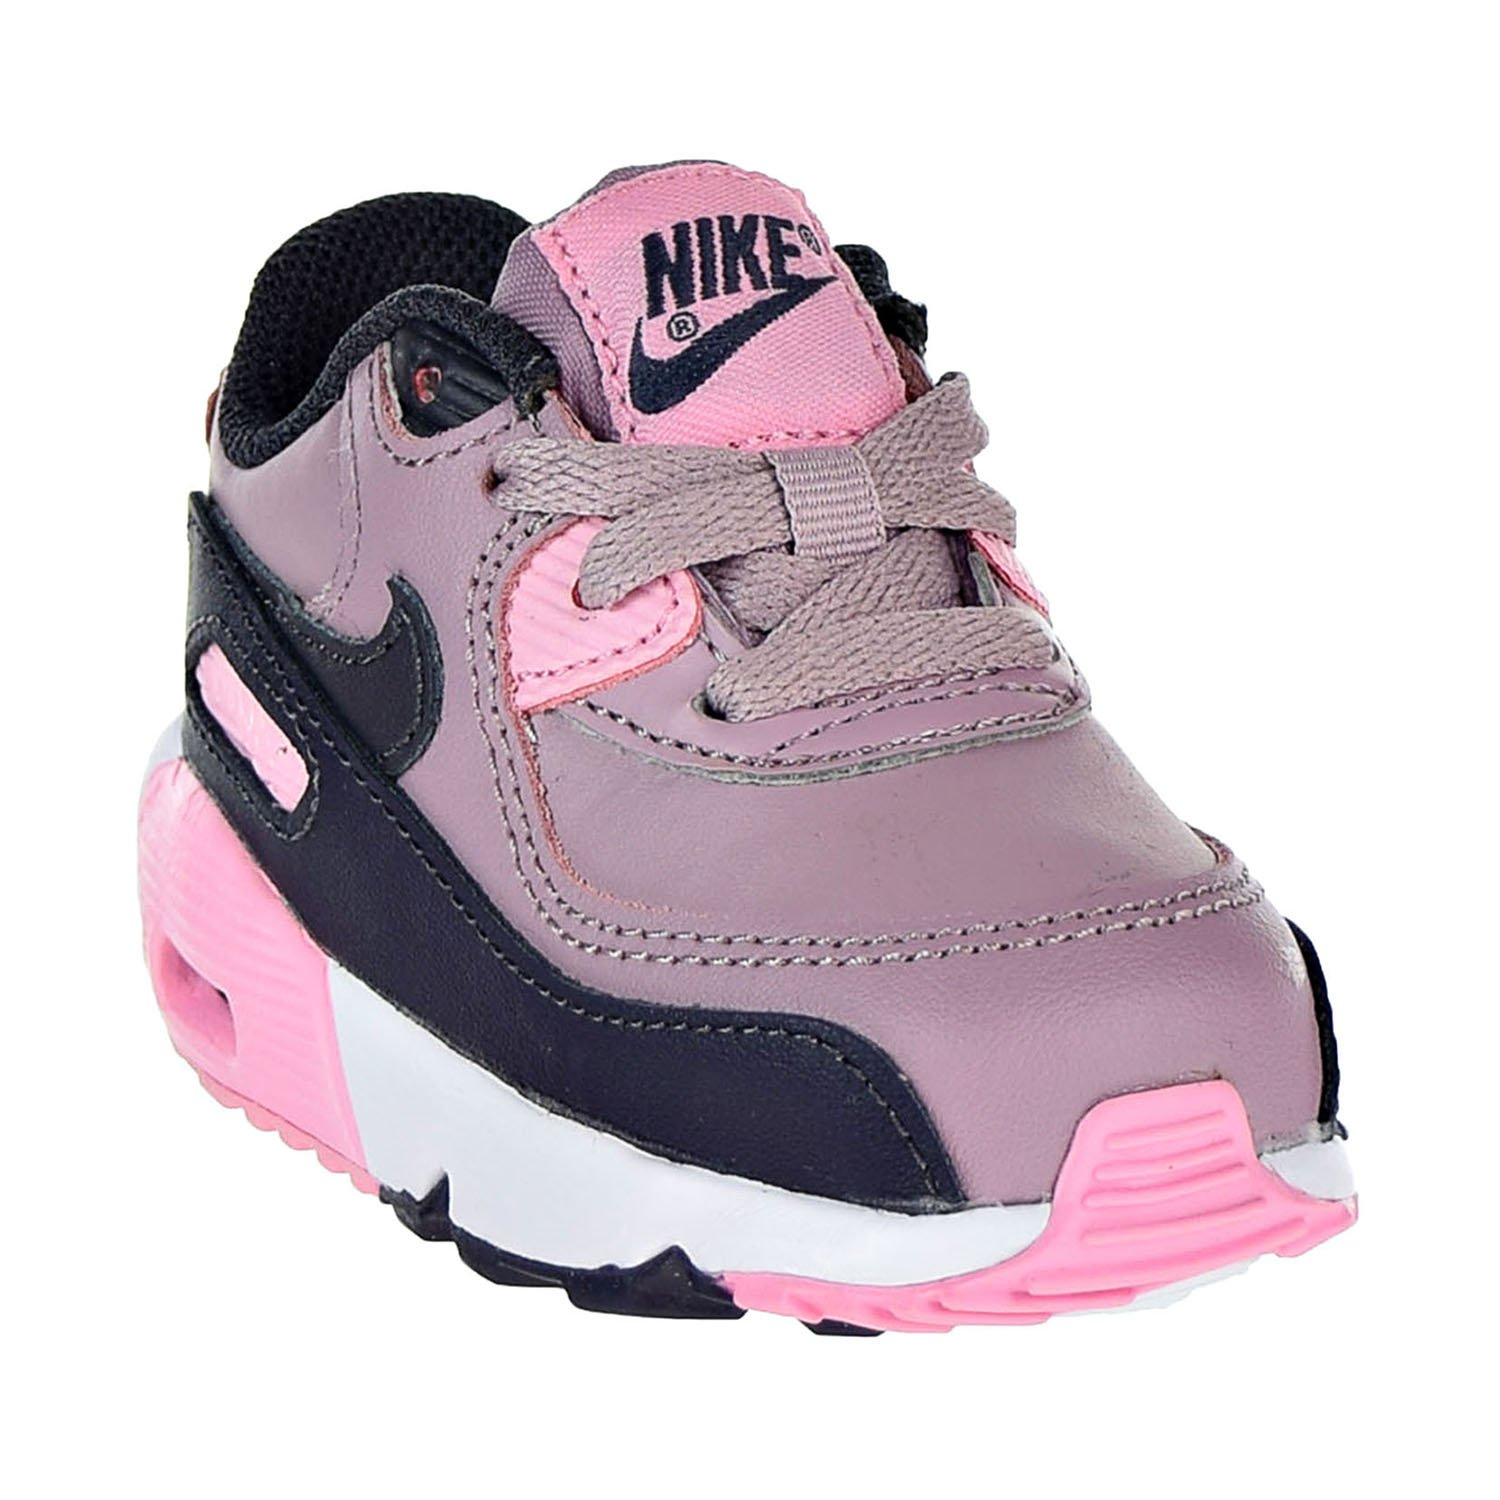 Nike Air Max 90 Leather TD Elemental RoseGrid Iron 833379 602